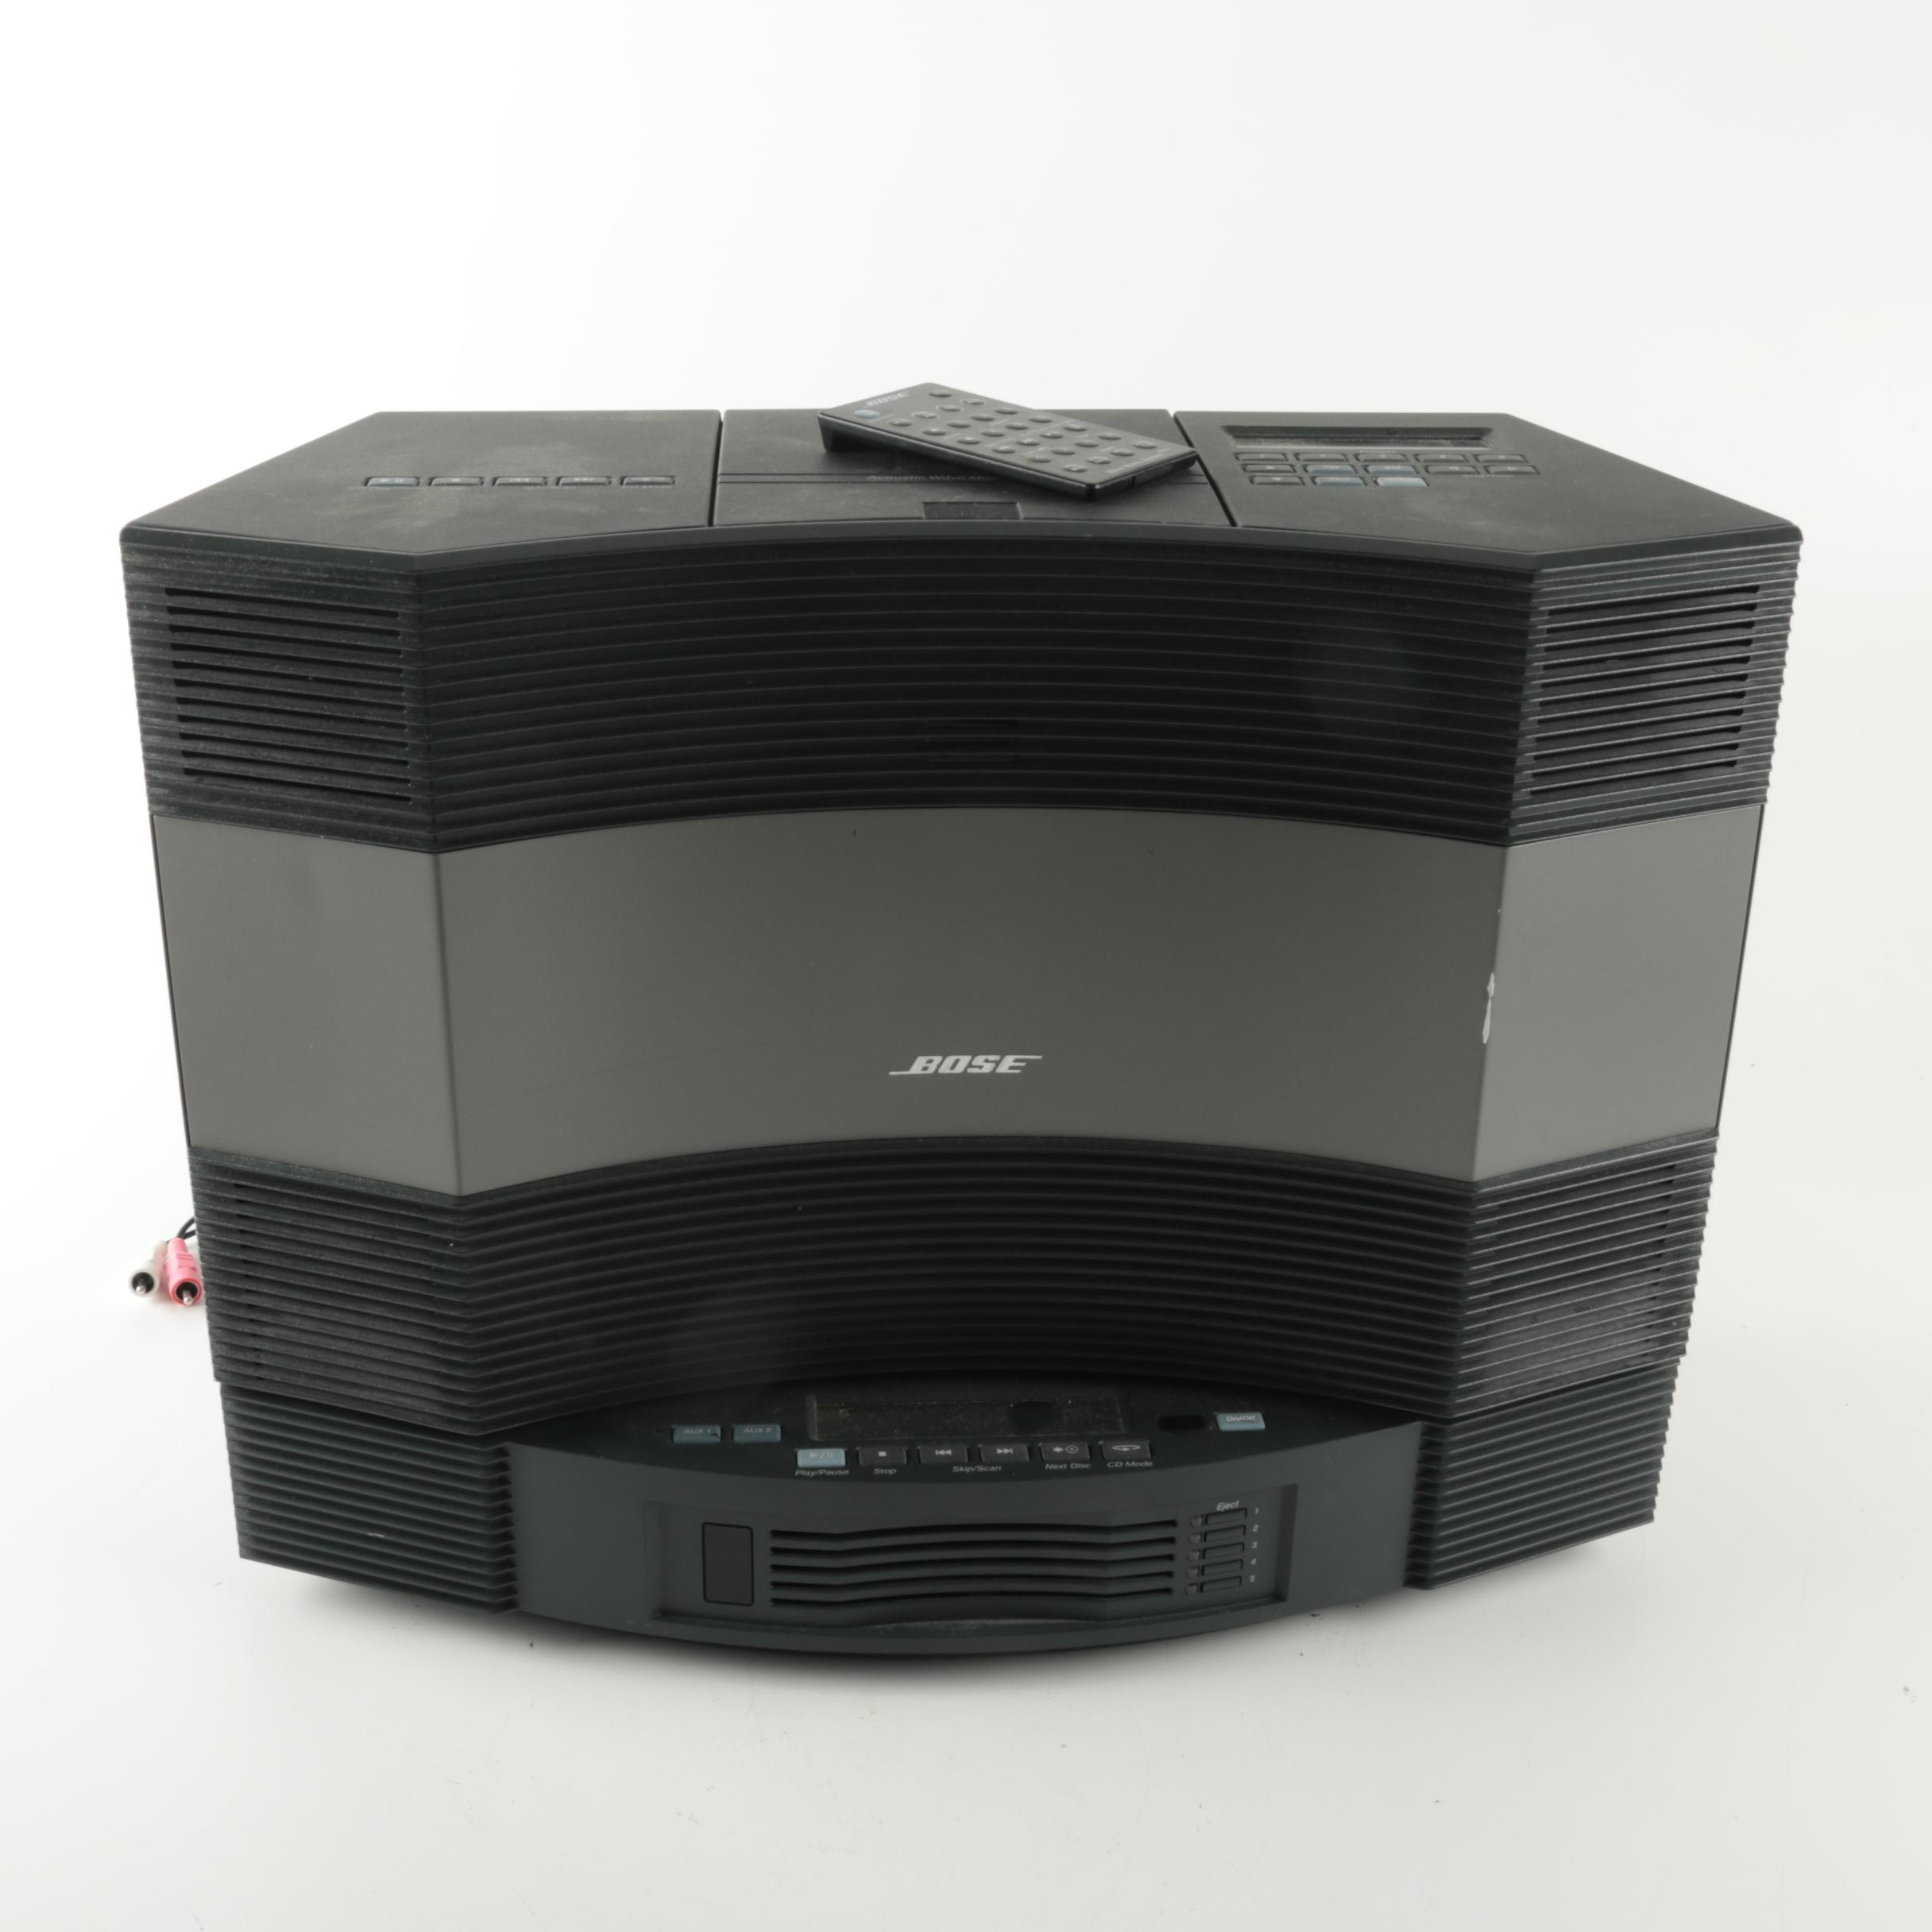 Bose Acoustic Wave Music System with Attachable Multi-Disc Changer